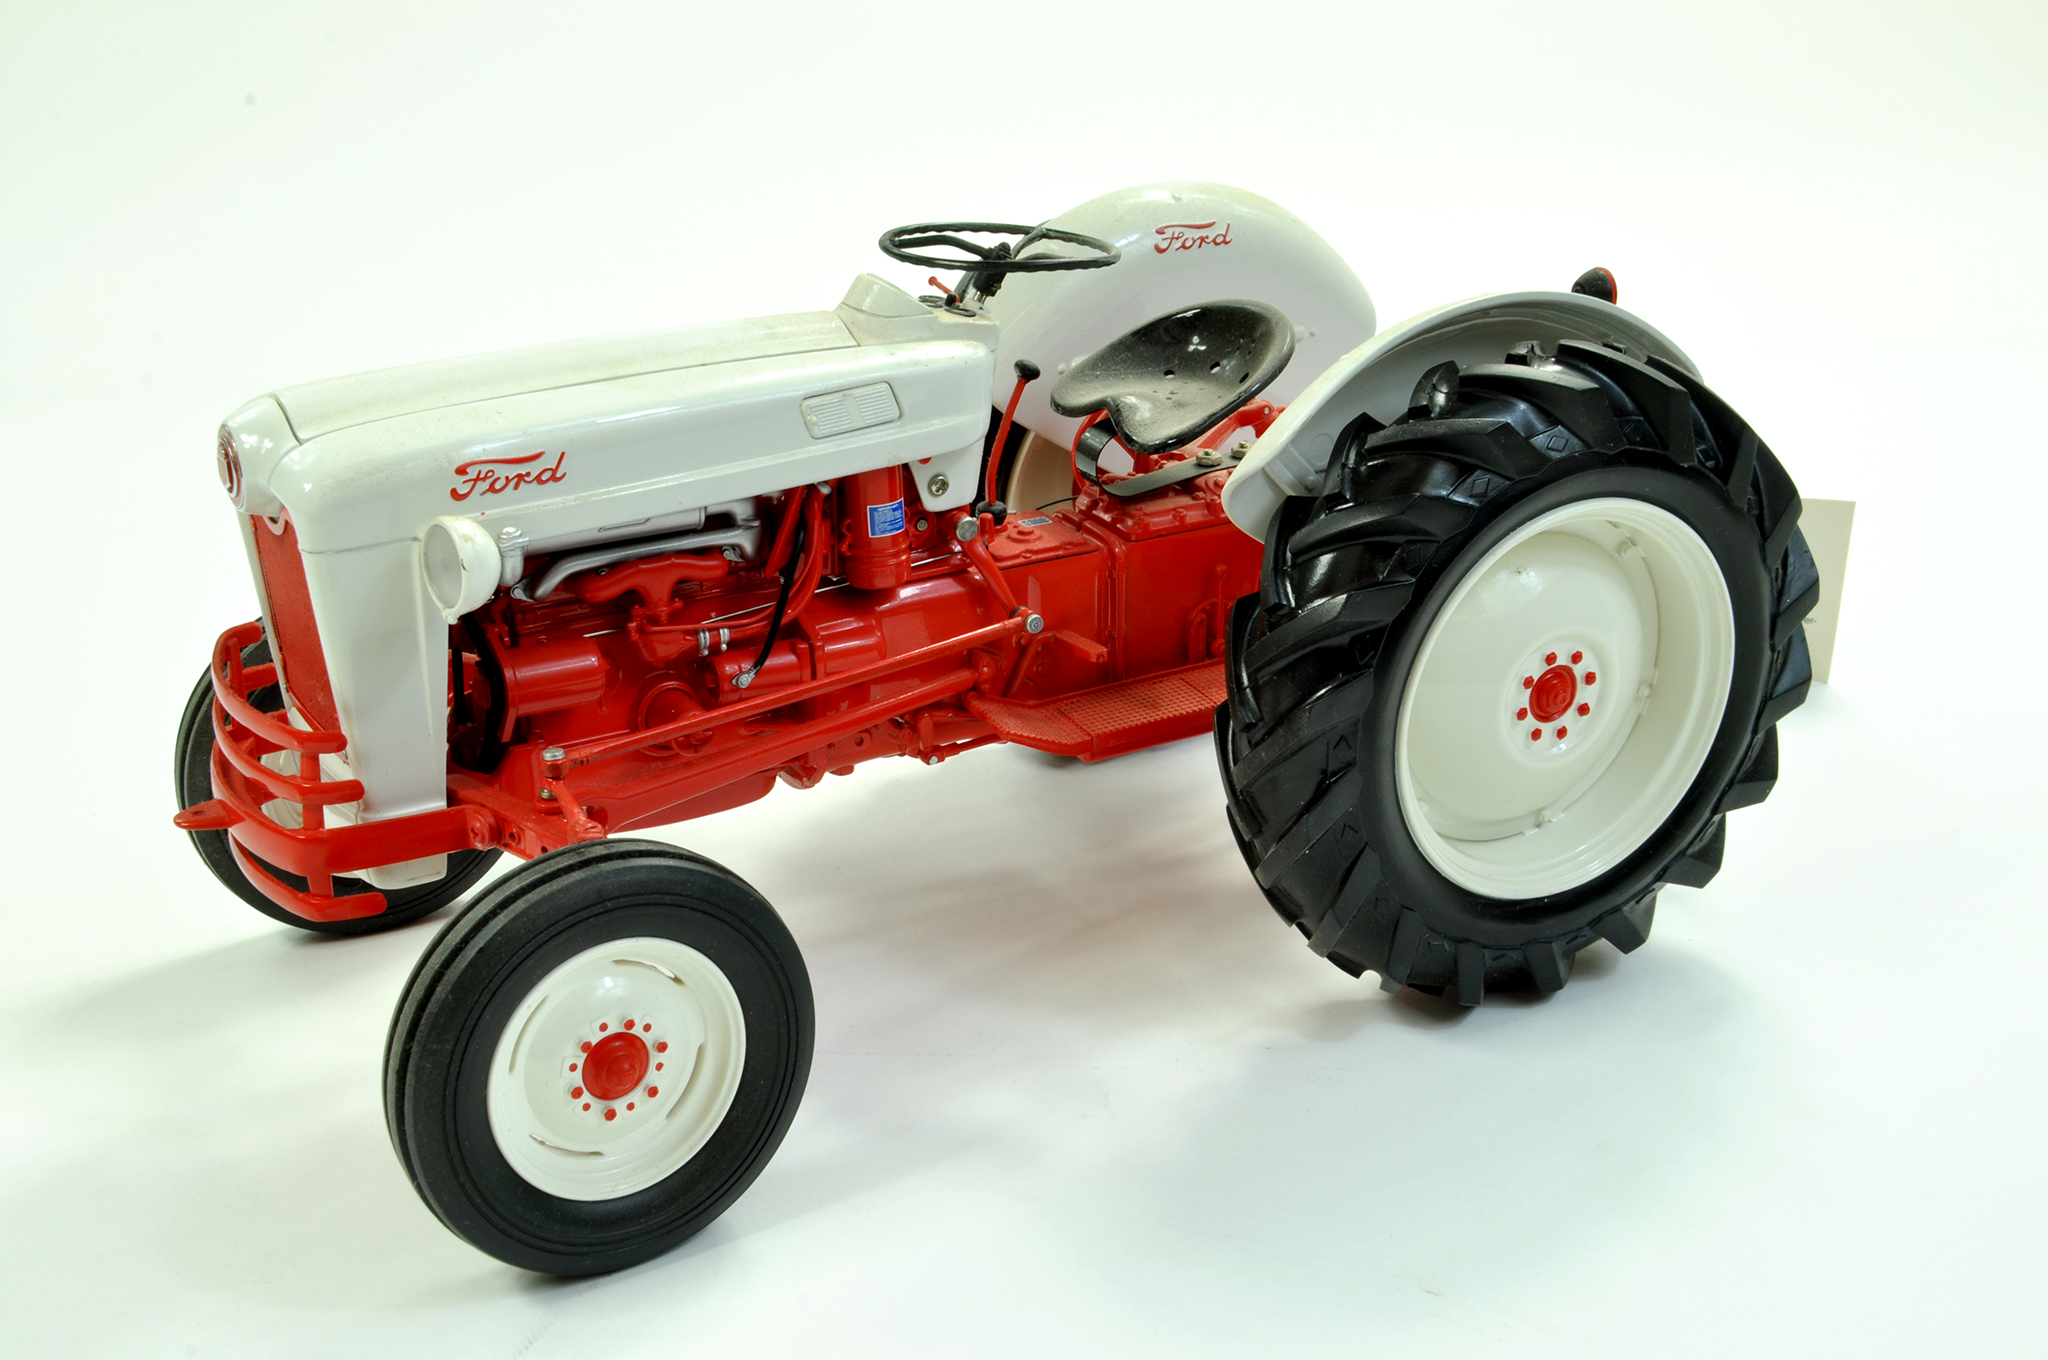 Lot 1 - Franklin Mint 1/12 Diecast Farm issue comprising Precision Detail 1953 Ford Jubilee Tractor. With